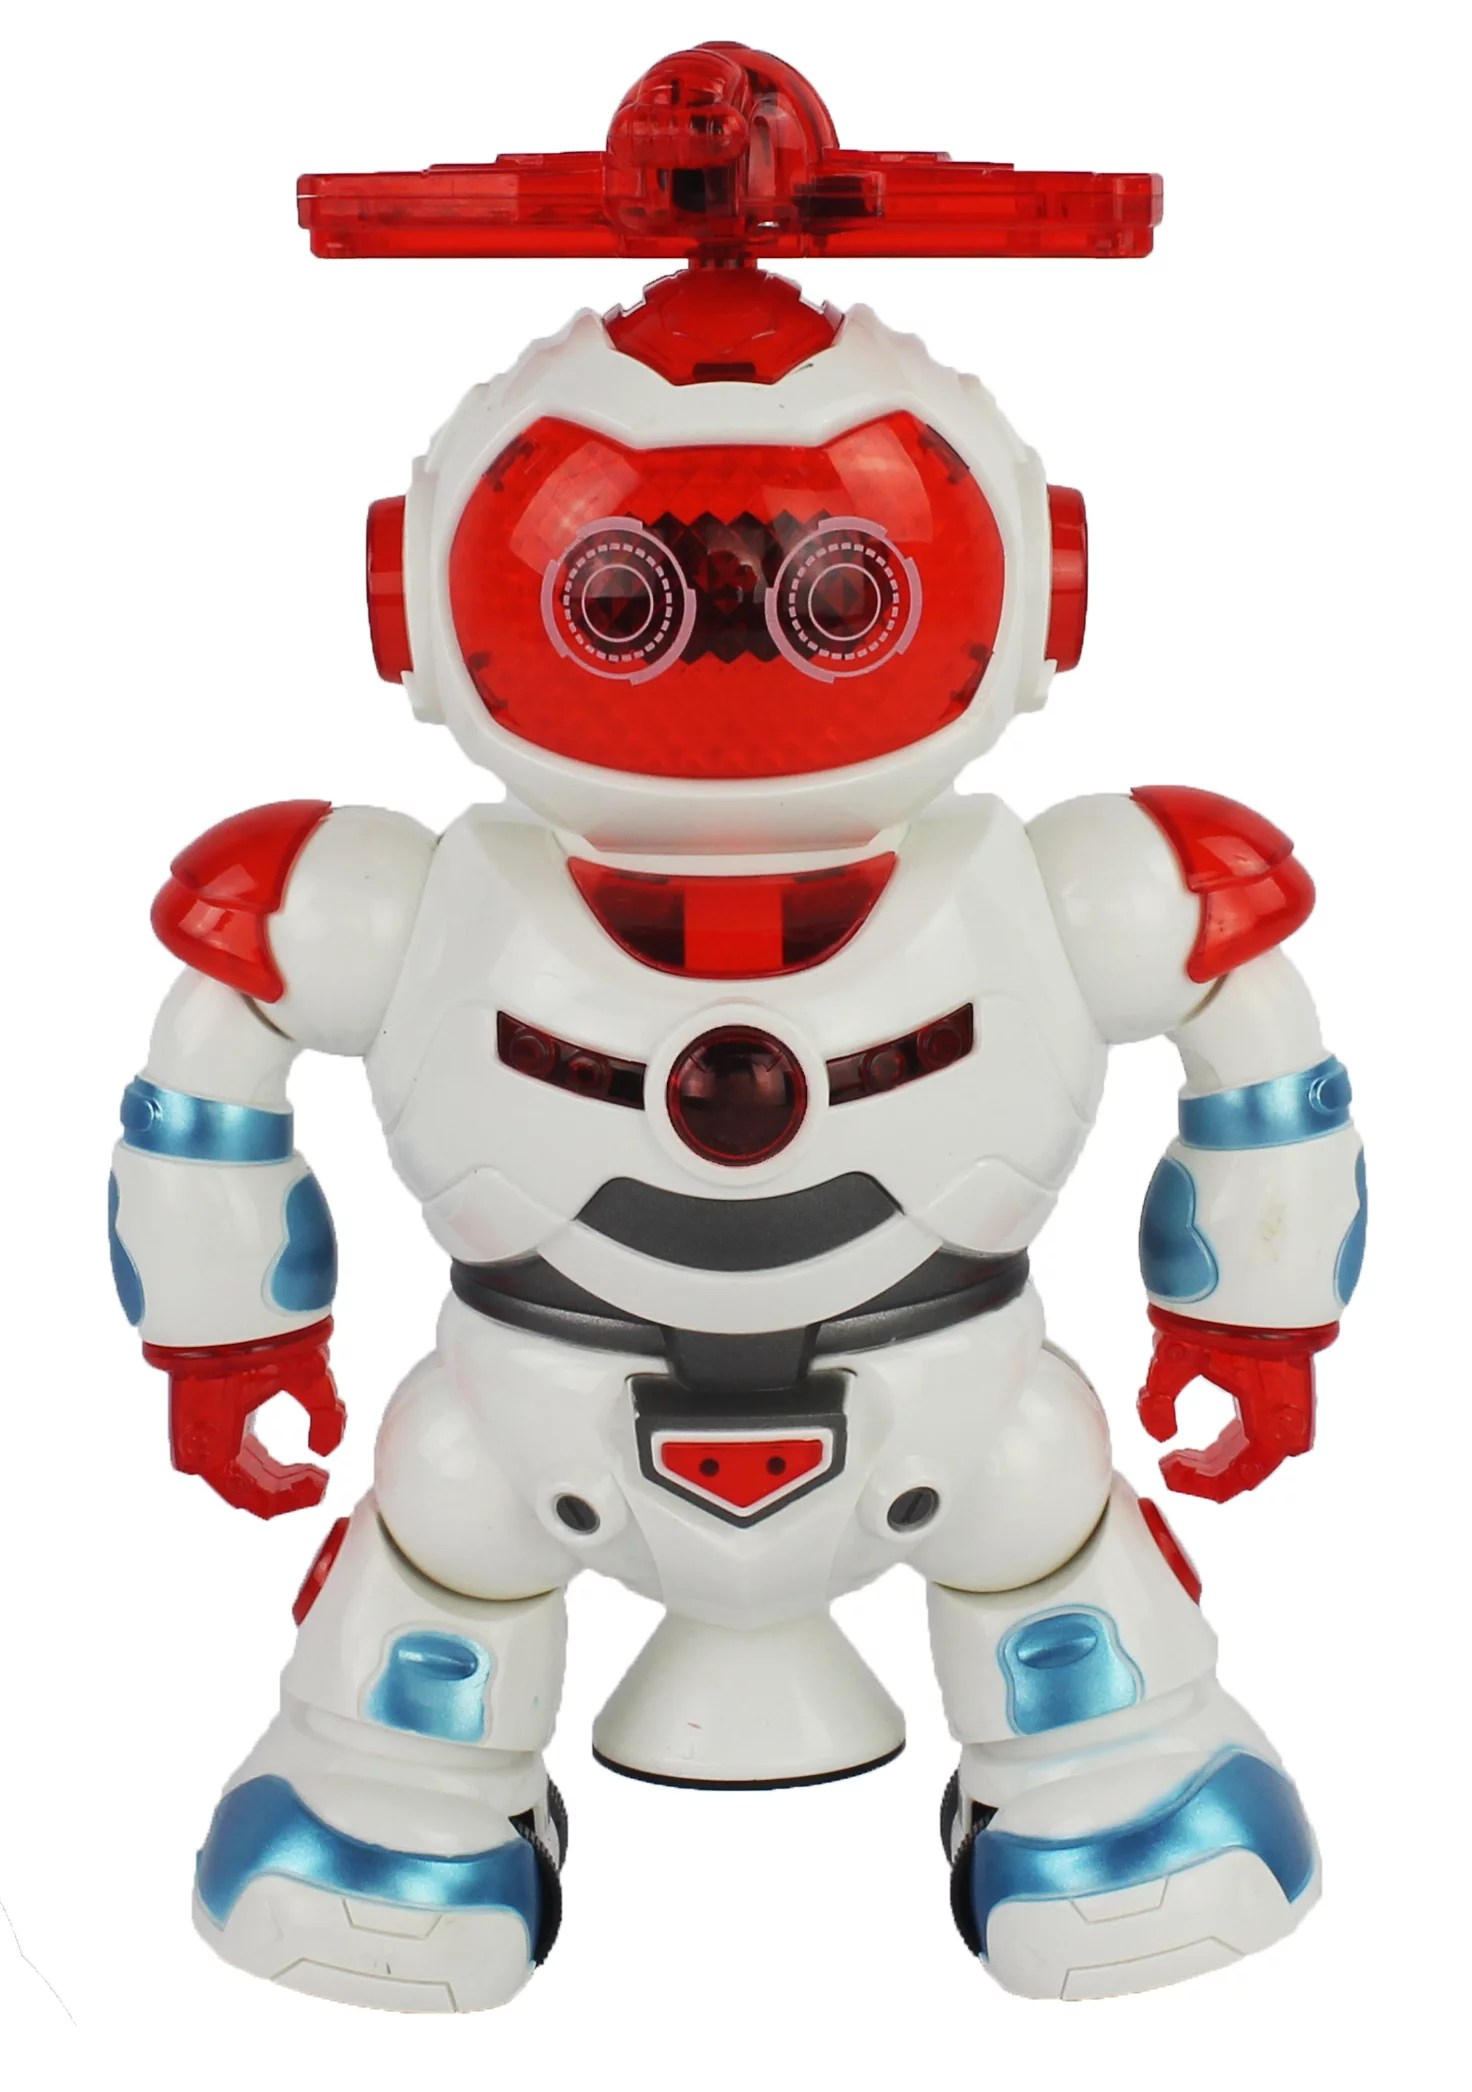 Children Robot Dancing Action Toy Robot Figure W Music Colorful Rotating Lights Dancing Action 360 Degree Spins Great Birthday Present For Kids Children